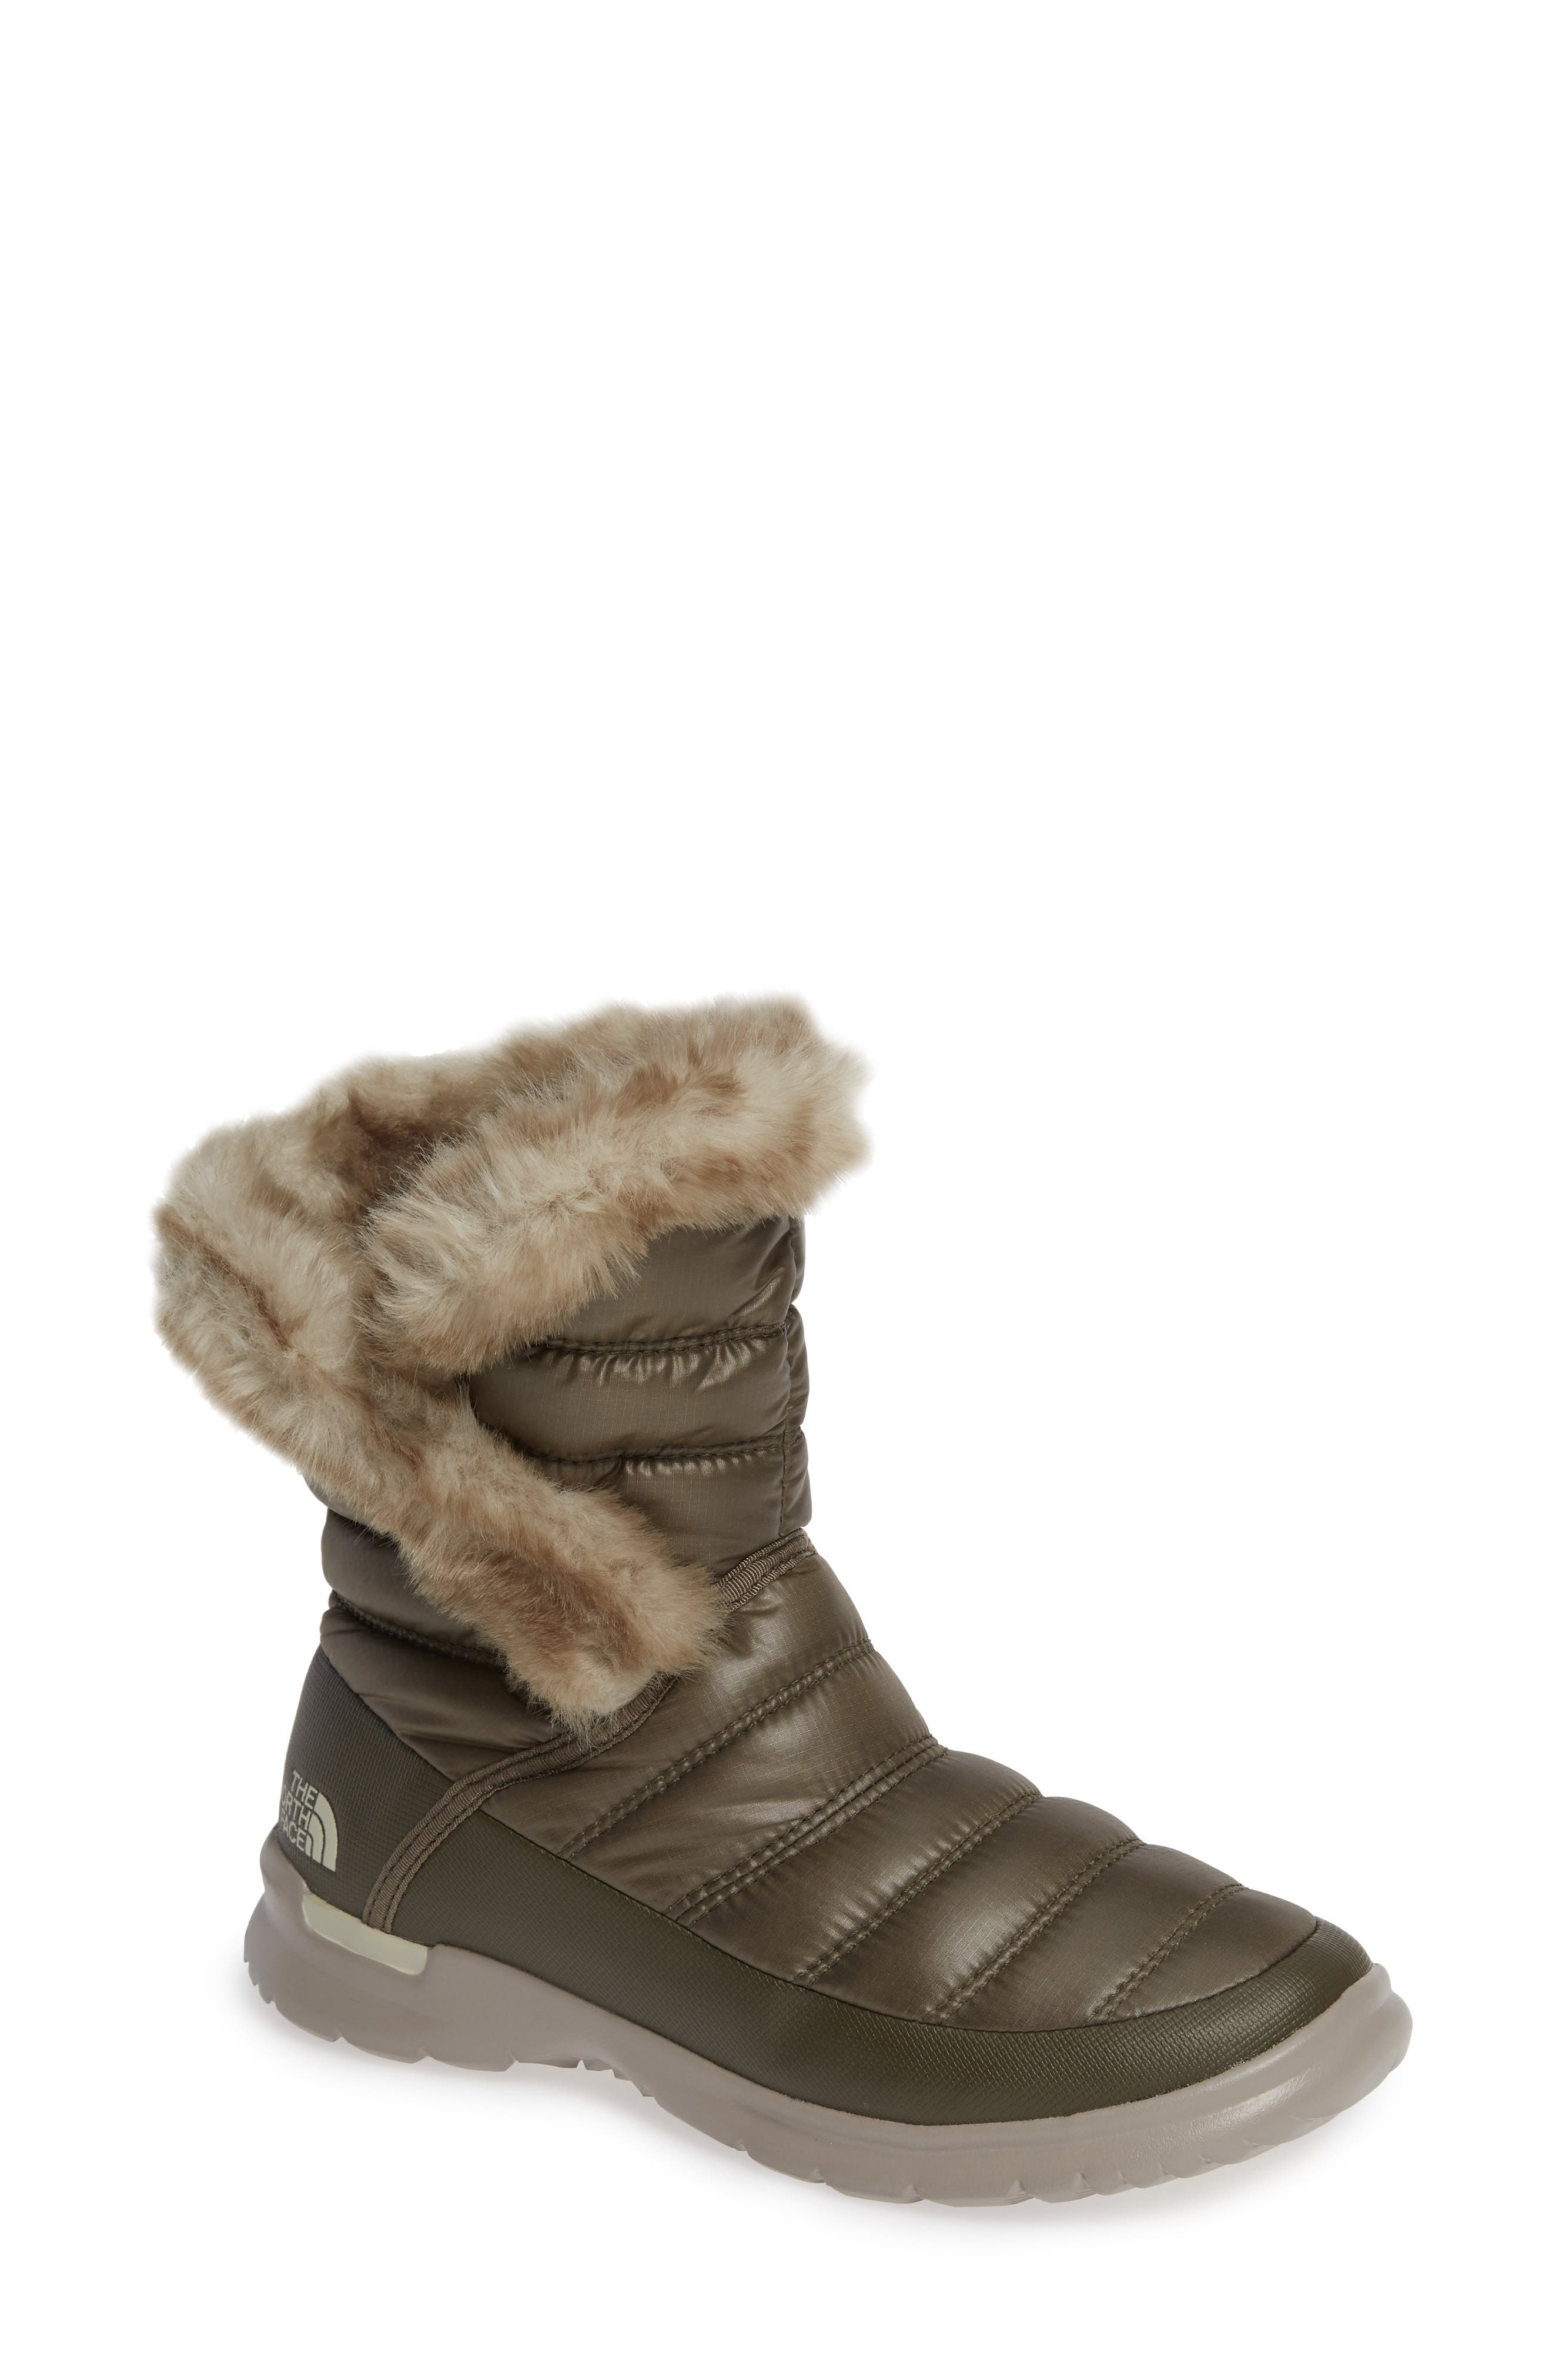 The North Face Microbaffle Waterproof Thermoball Insulated Winter Boot, Green